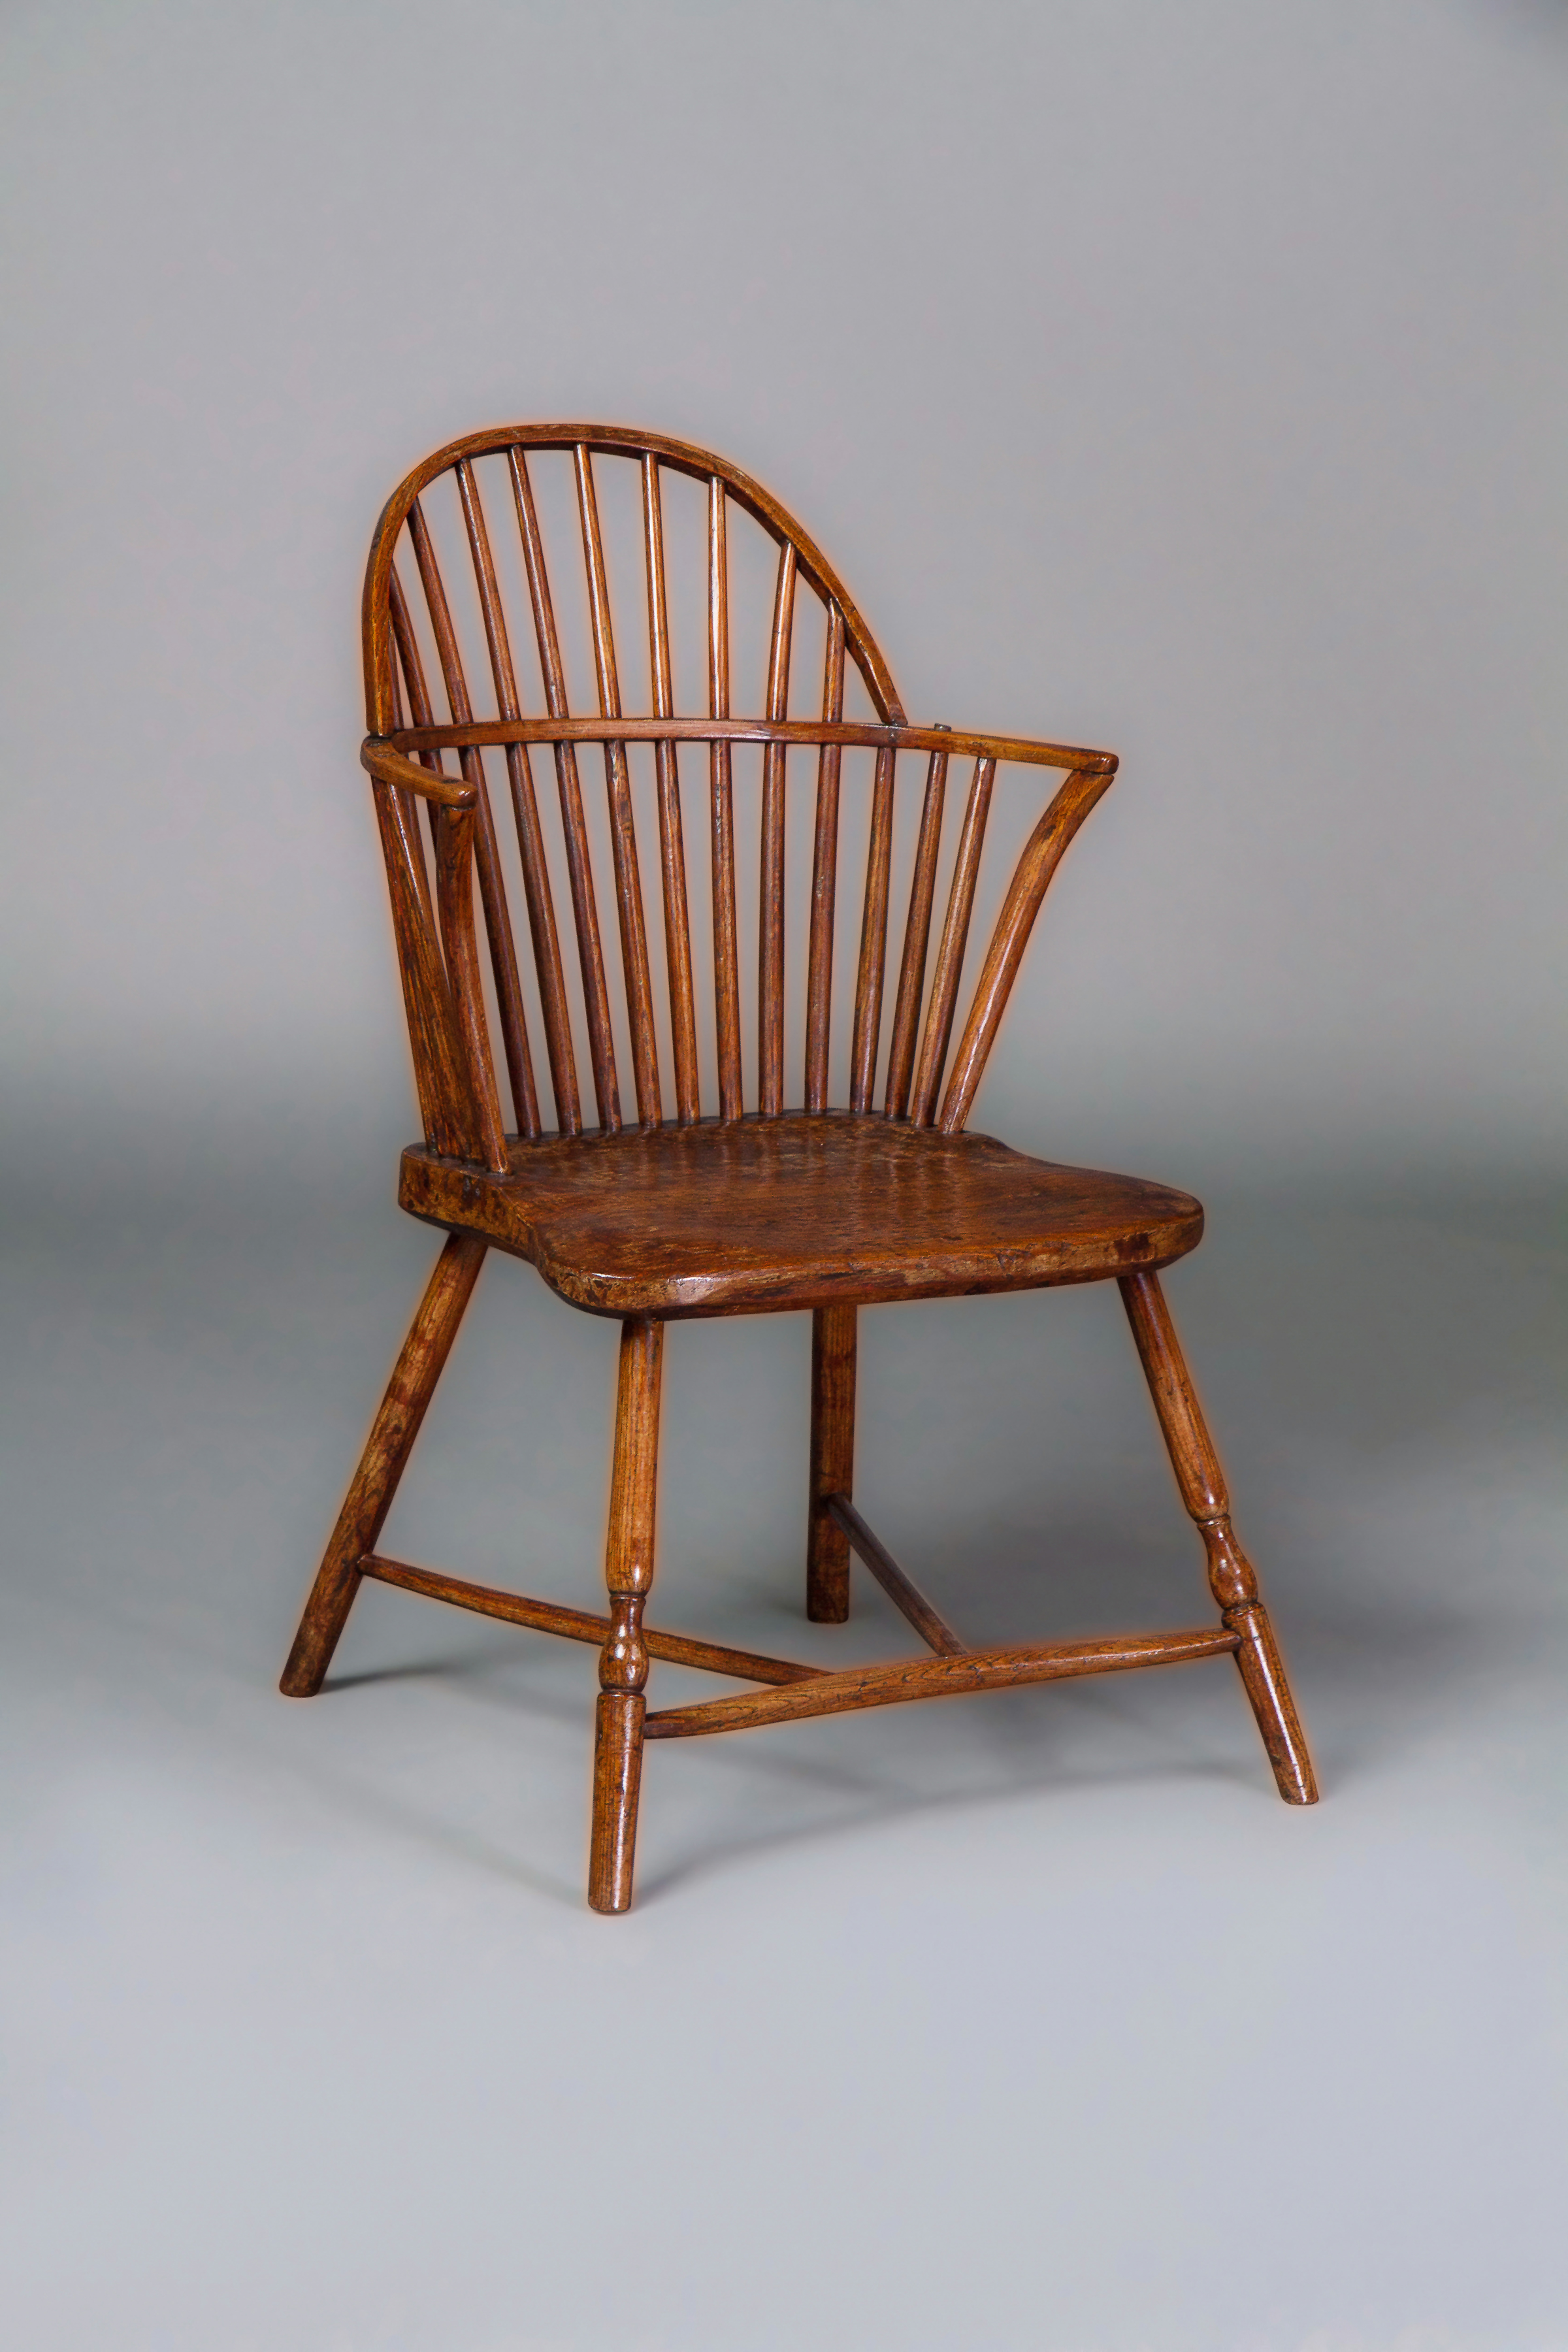 Gillows A Late 18th Century Ash Windsor Chair Almost Certainly For The American Market Michael Pashby Antiques